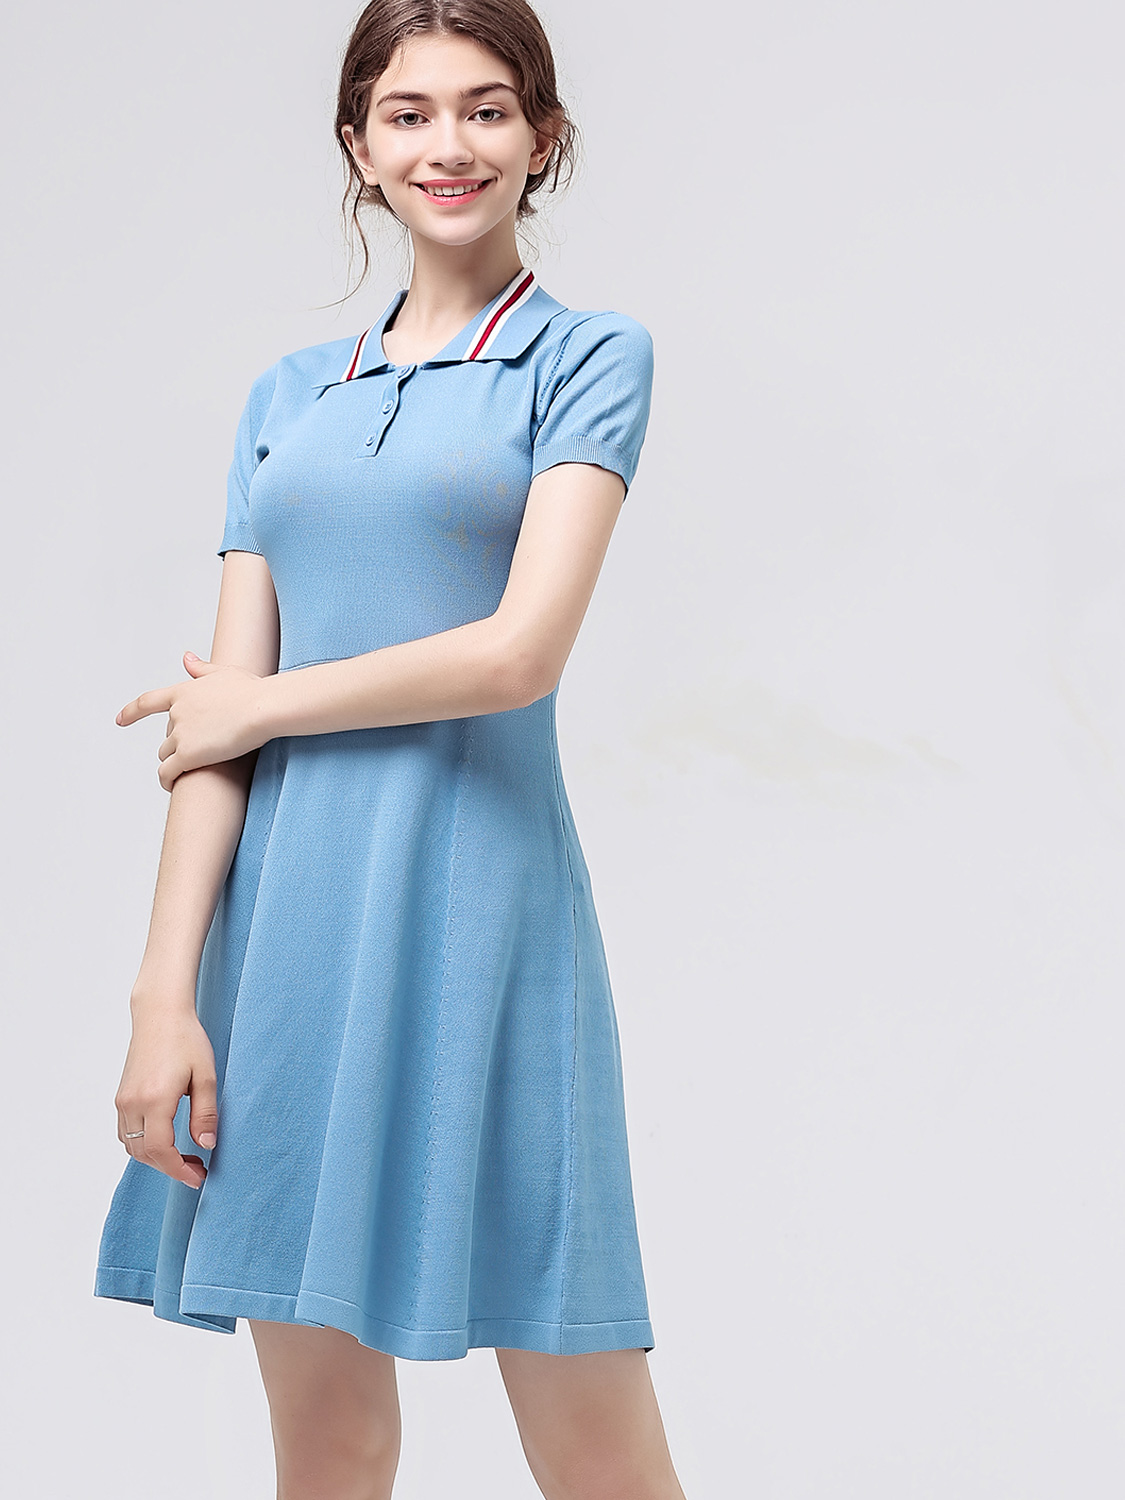 cb39fd386 US  48 - Contrast Collar Button Front Short Sleeve Fit and Flare Tee Dress  - www.onebling.com